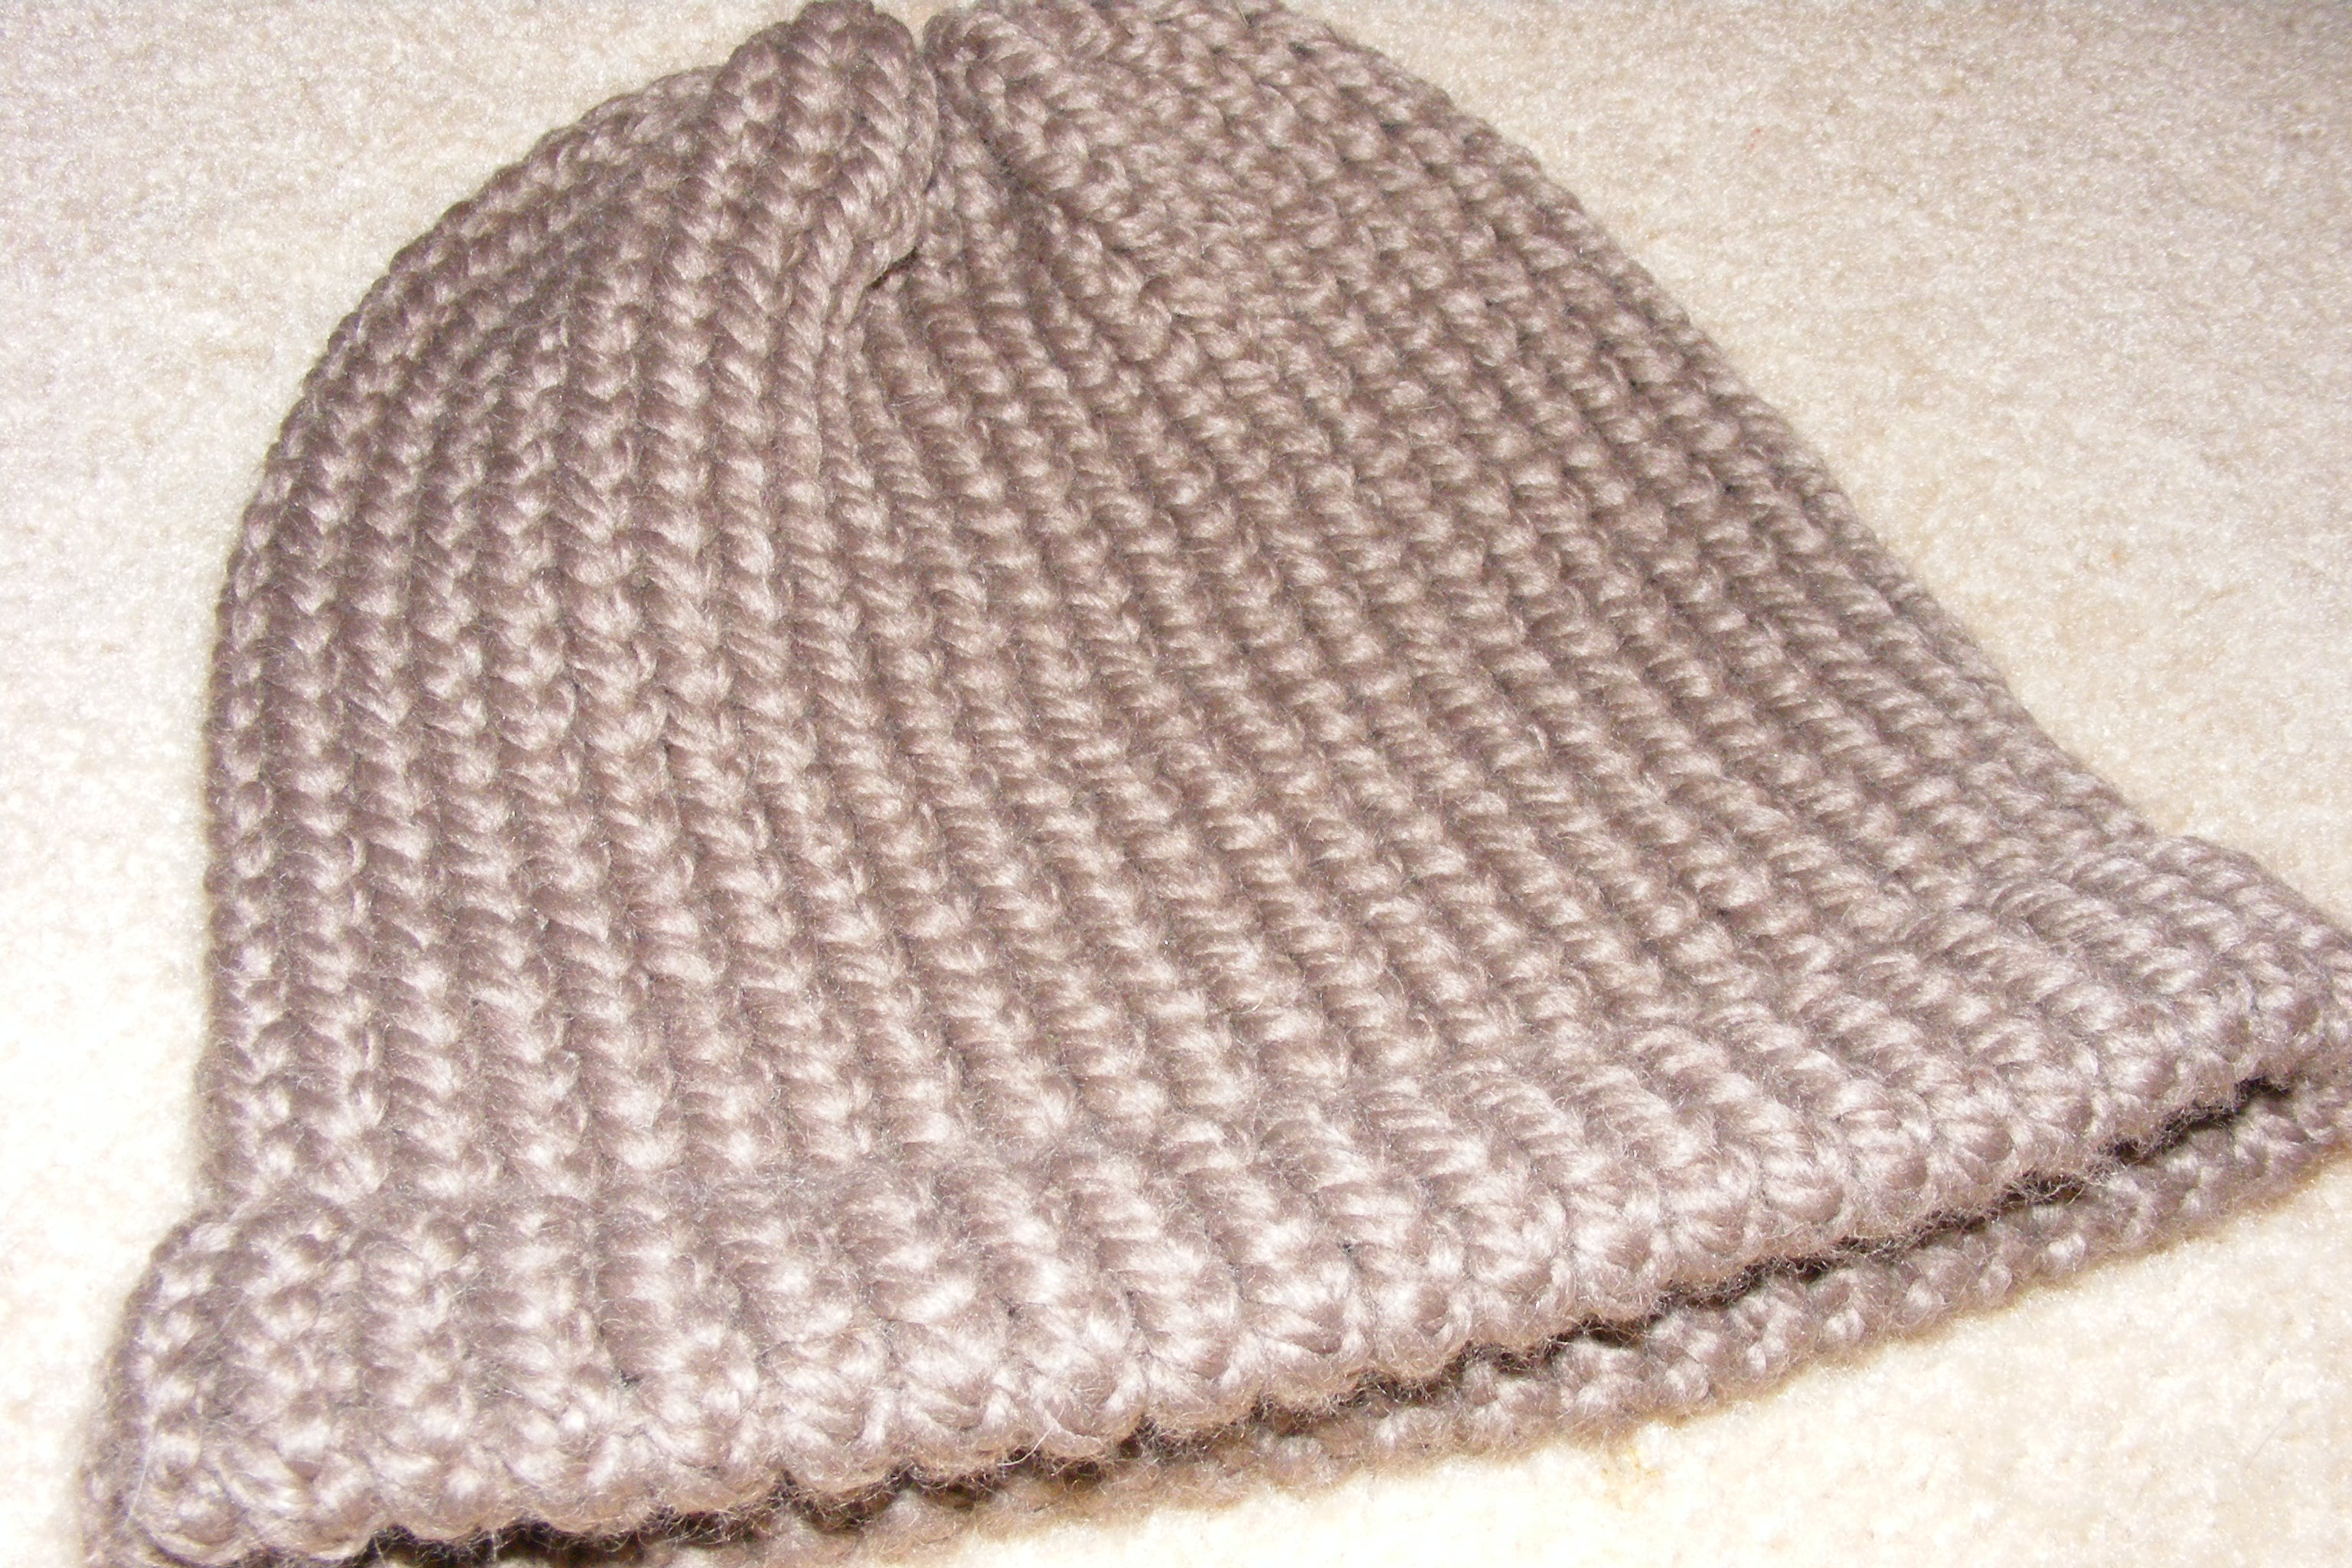 Knitting Loom Hat Stitches : 301 Moved Permanently